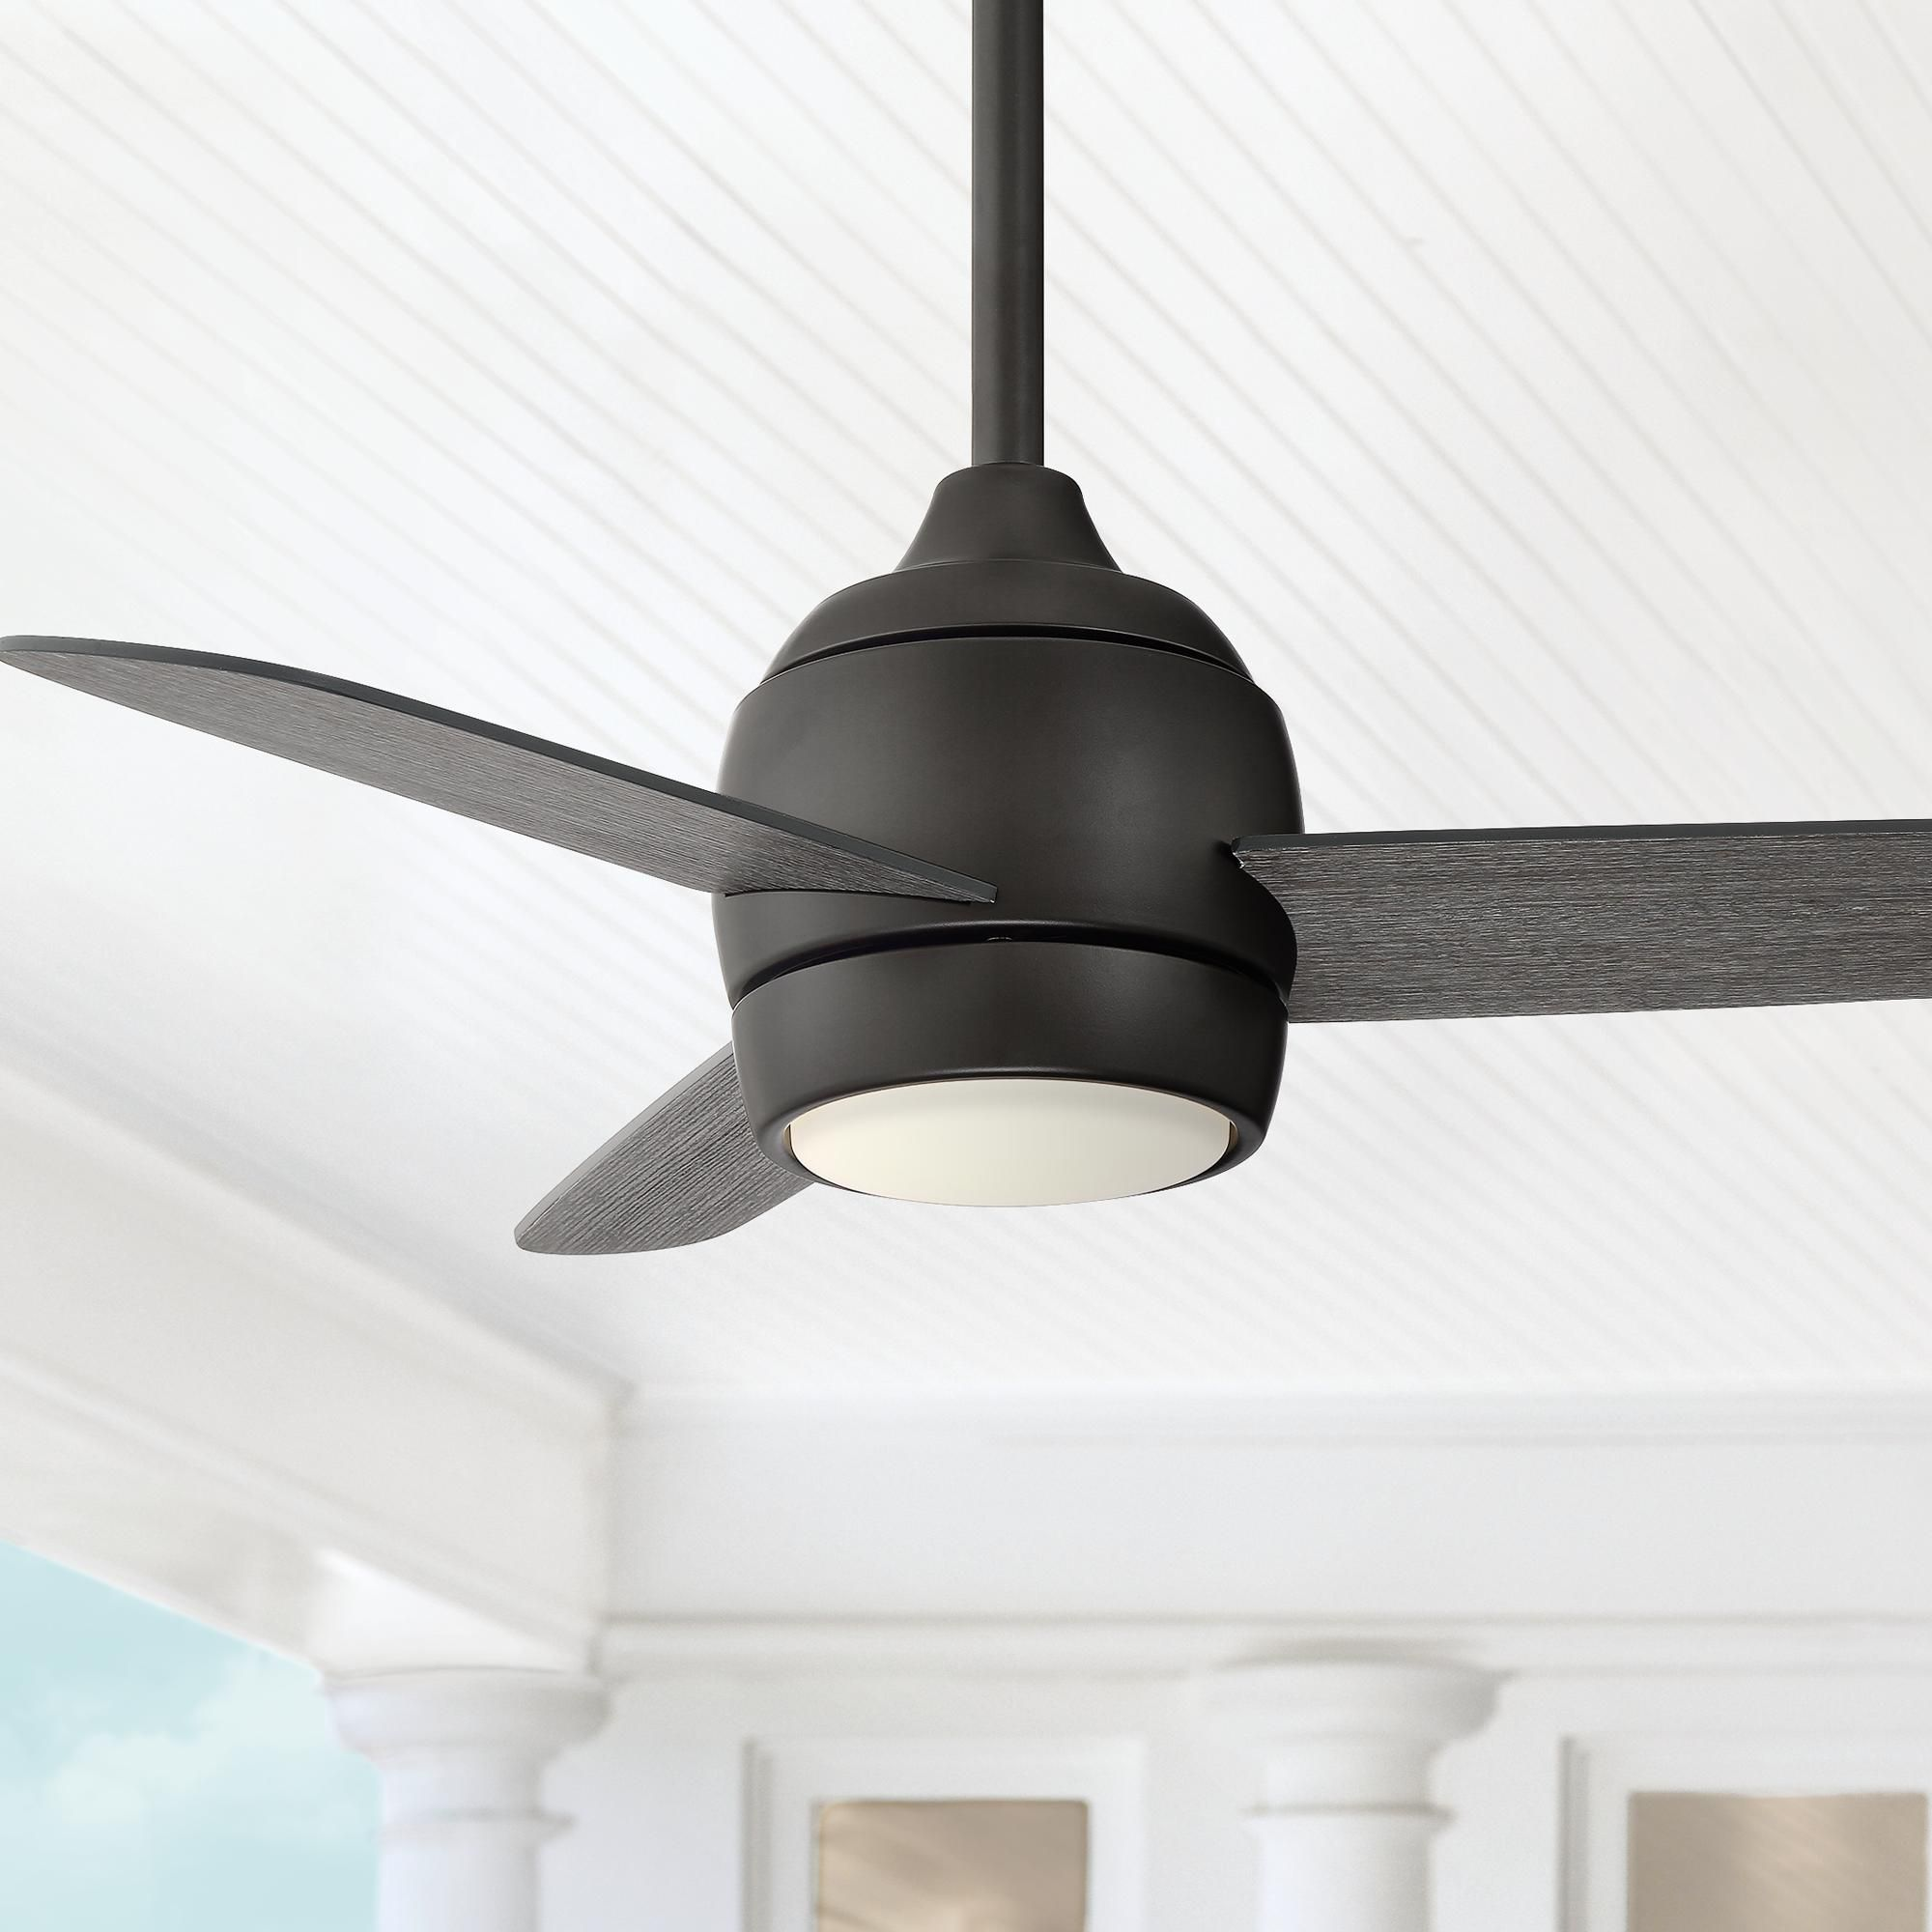 36 Inch Airbourne Oil Rubbed Bronze Damp Rated Led Ceiling Fan